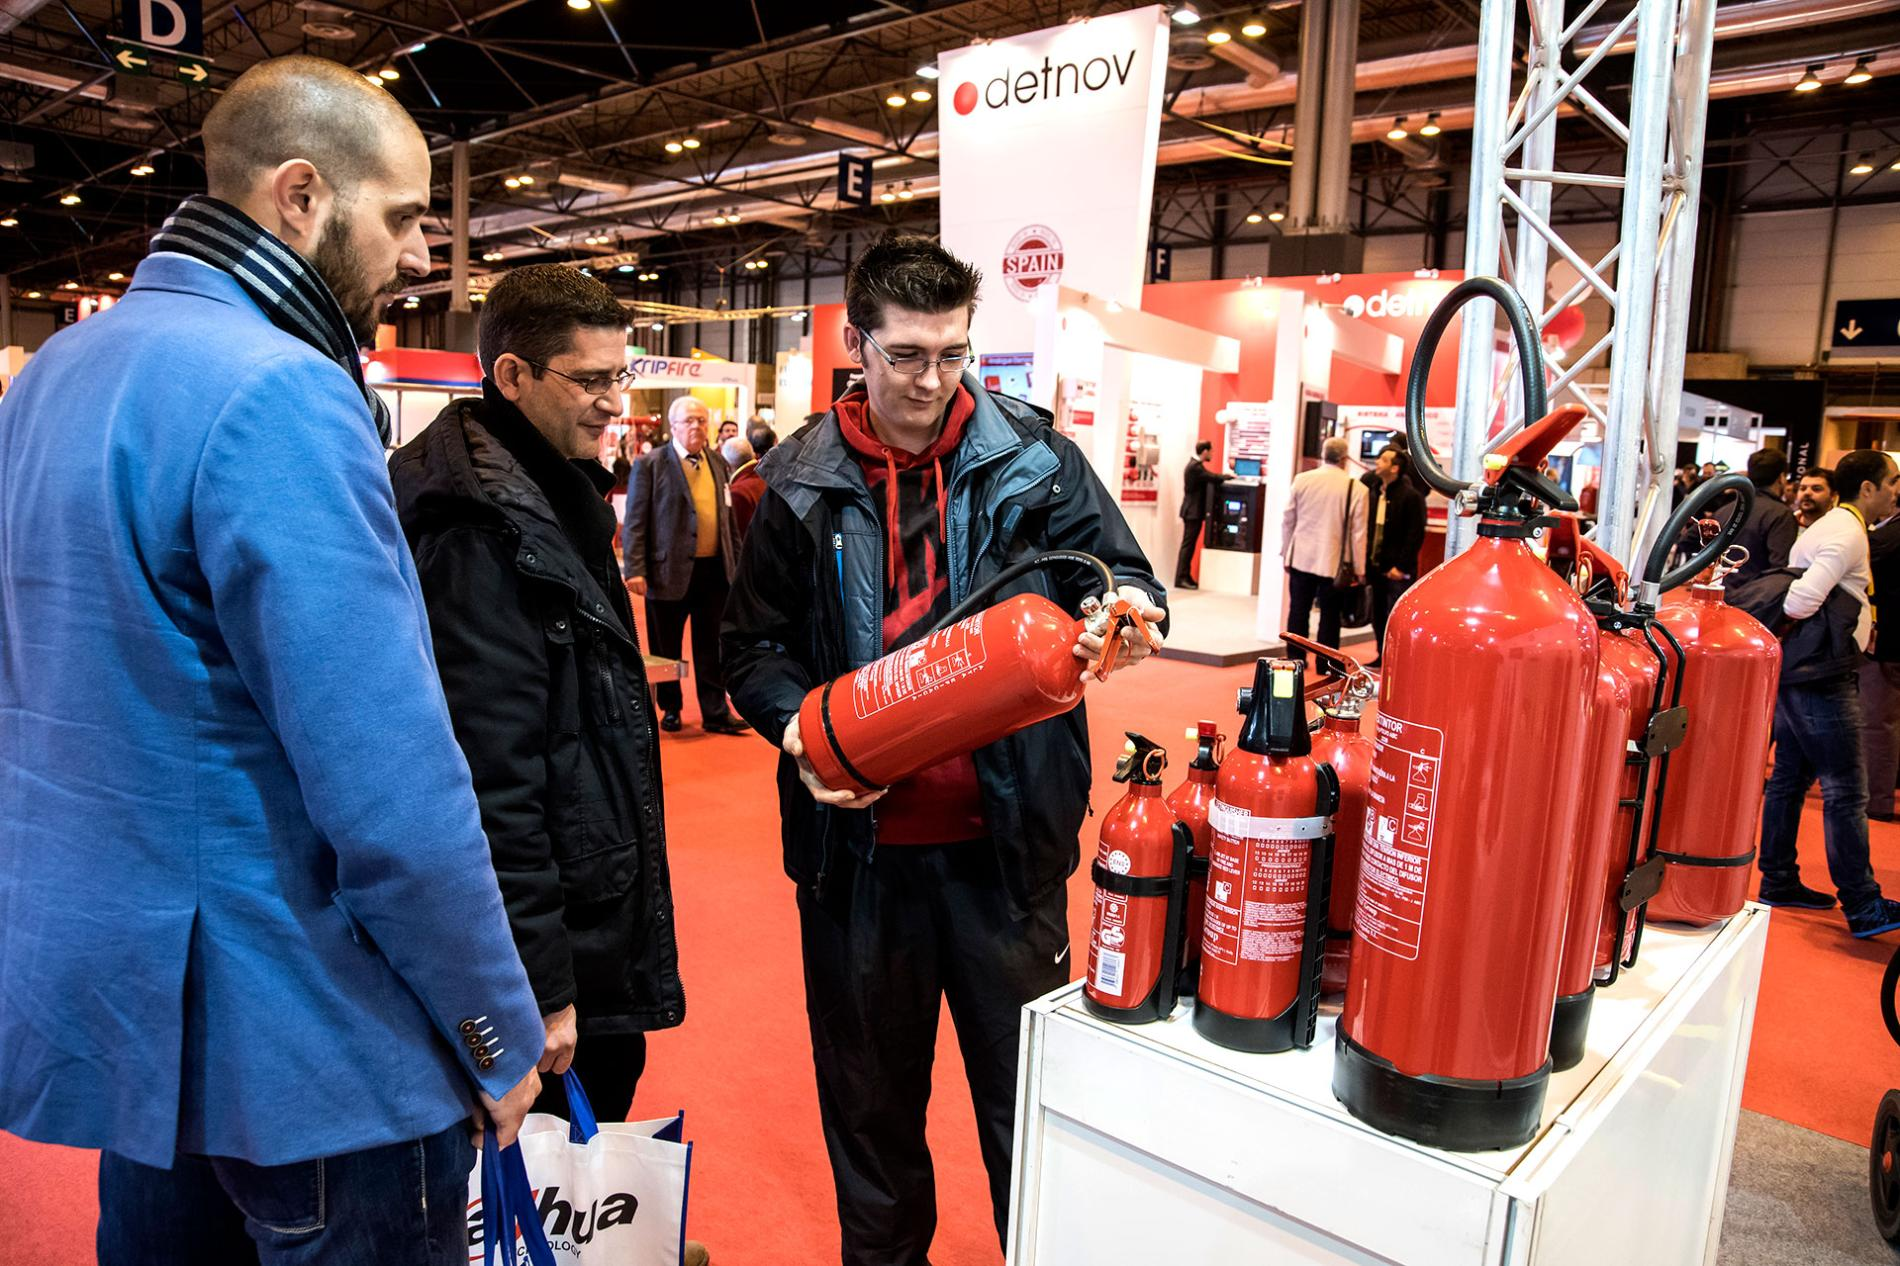 Assistants with fire extinguishers at the Sicur fair